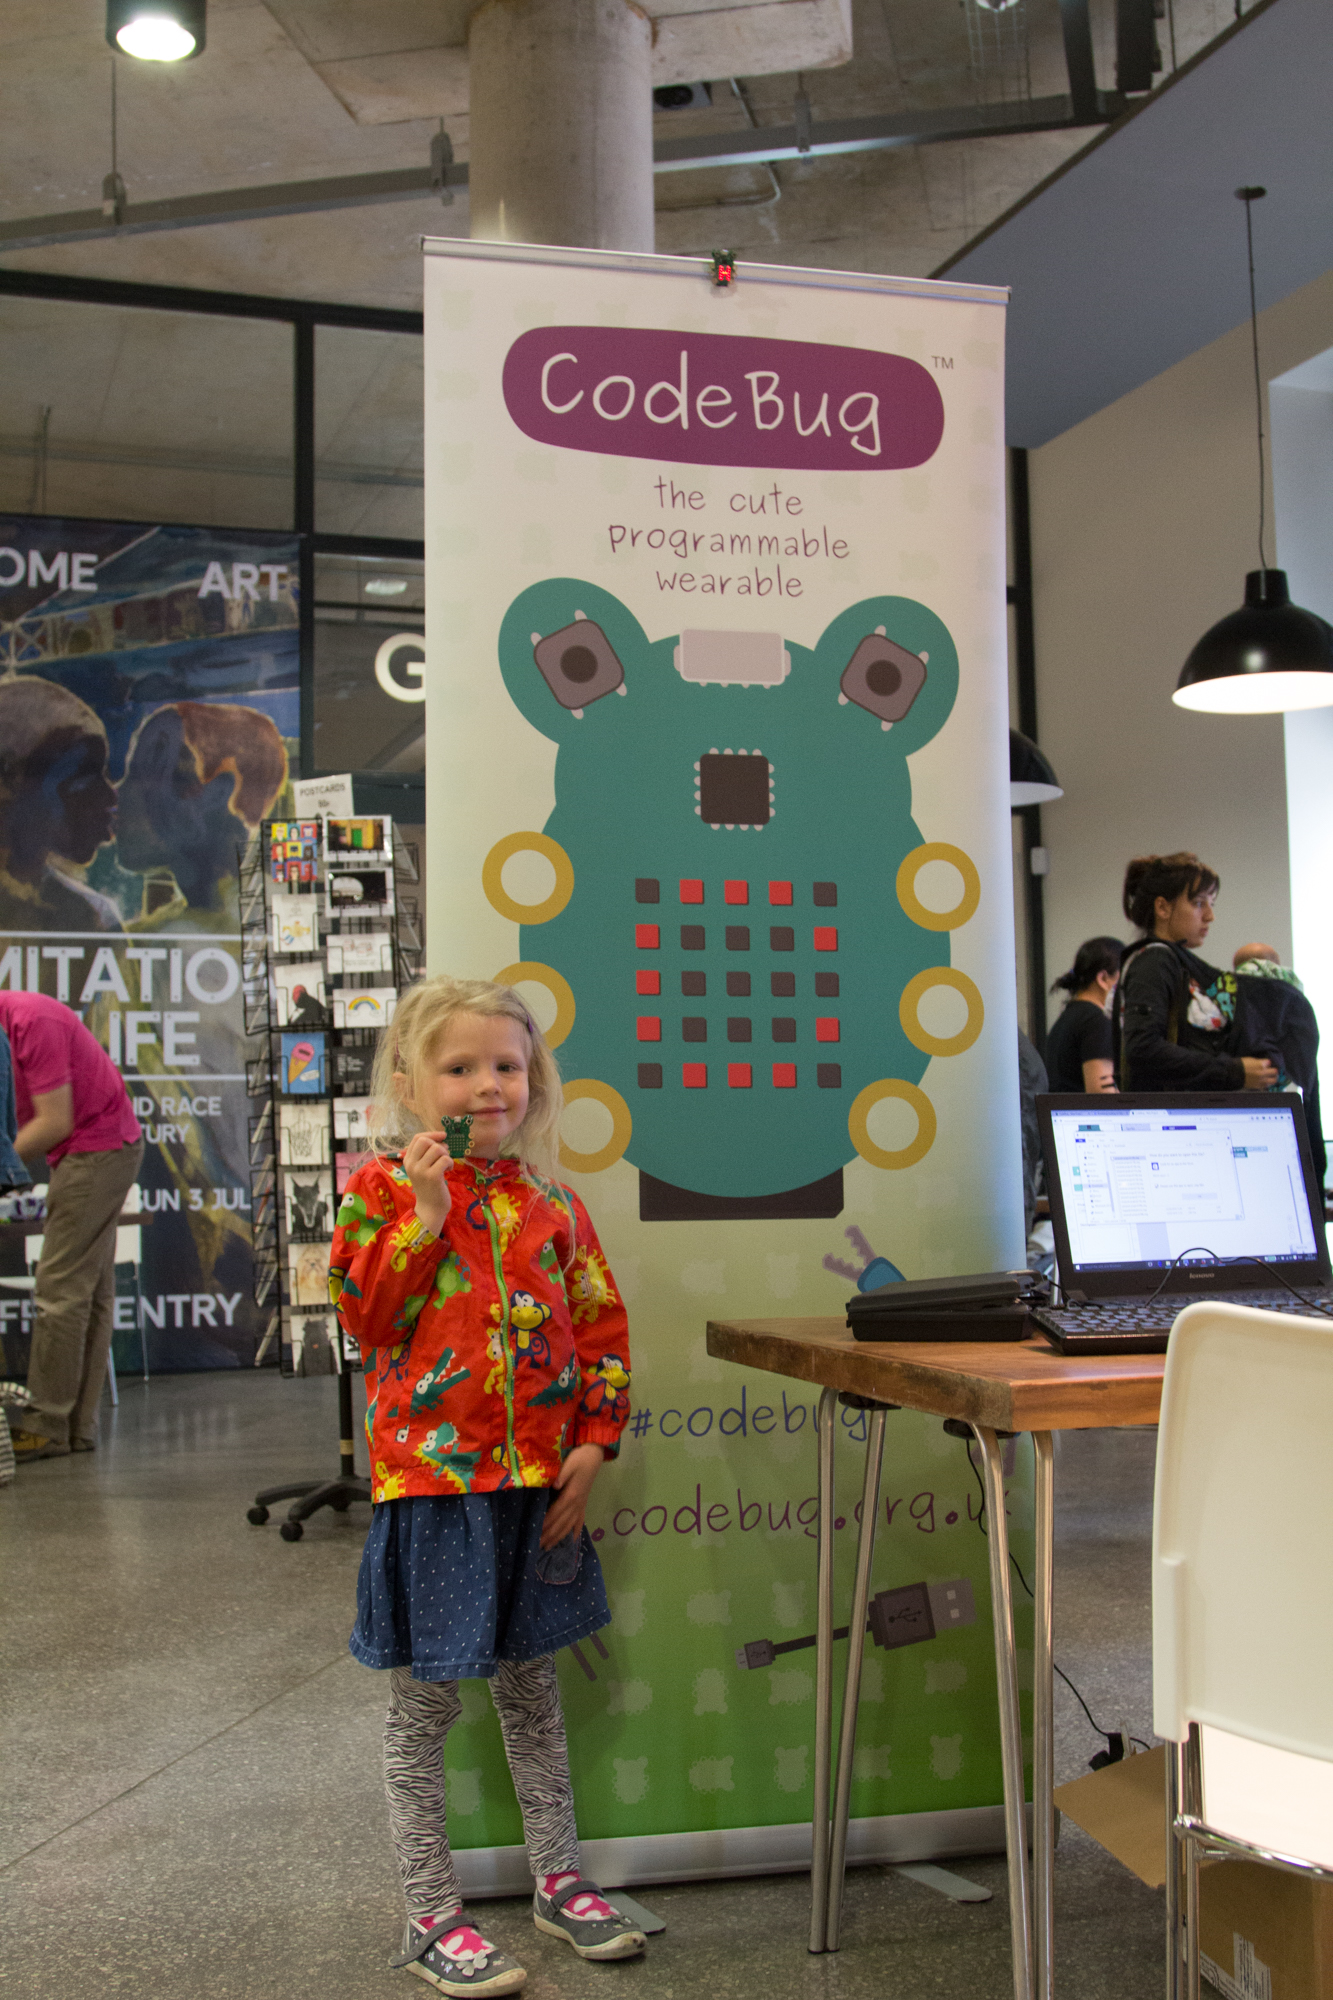 CodeBug at HOME